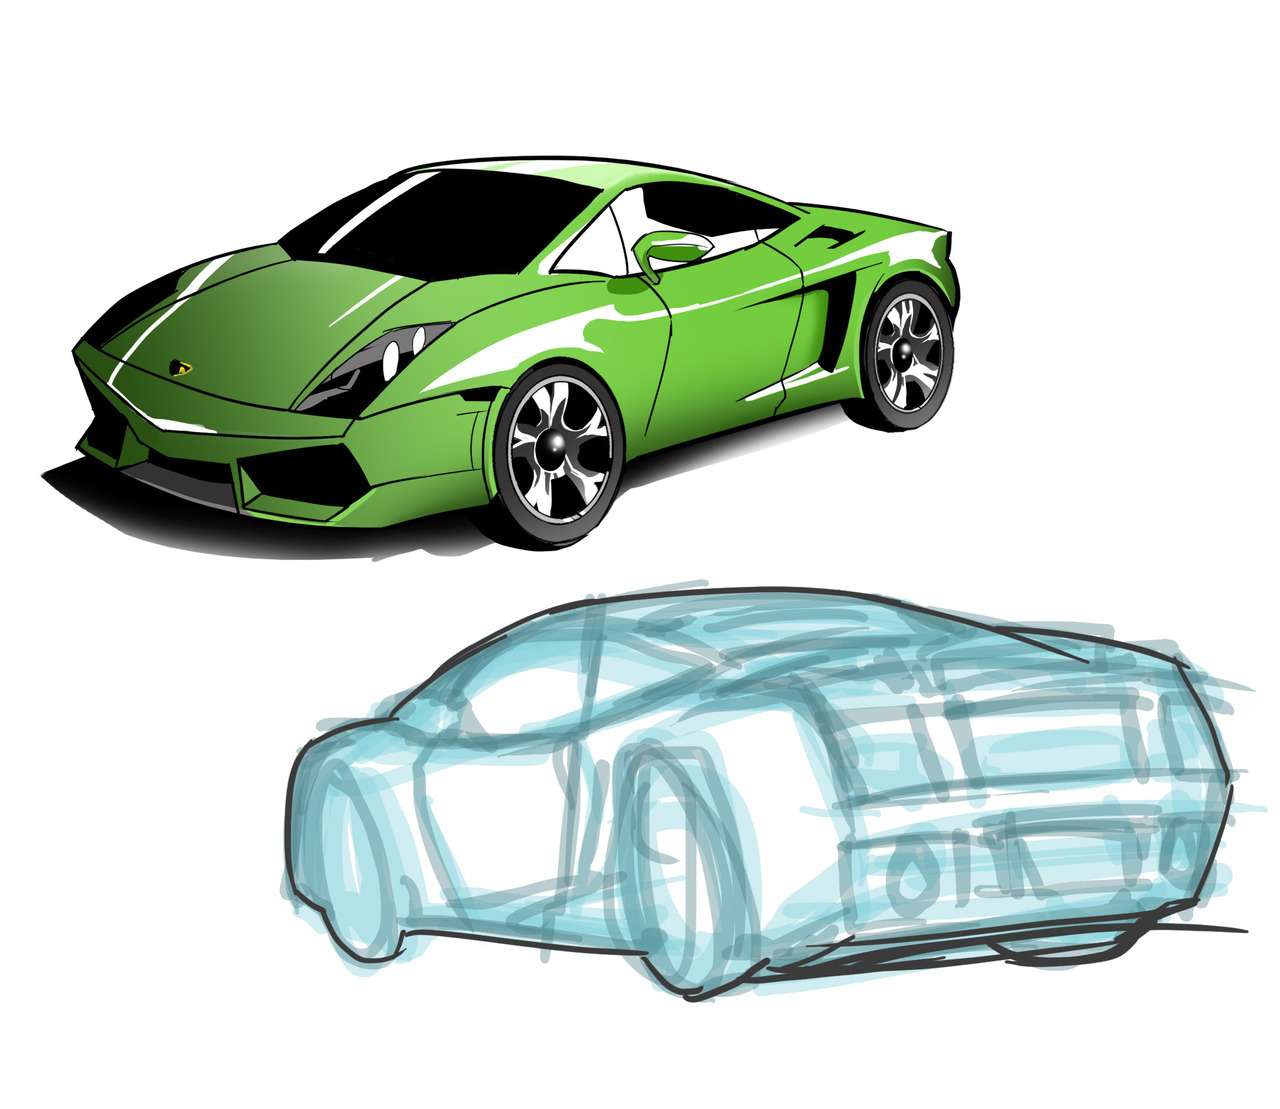 Here's a Lamborghini Twin Turbo Gallardo and one in progress.